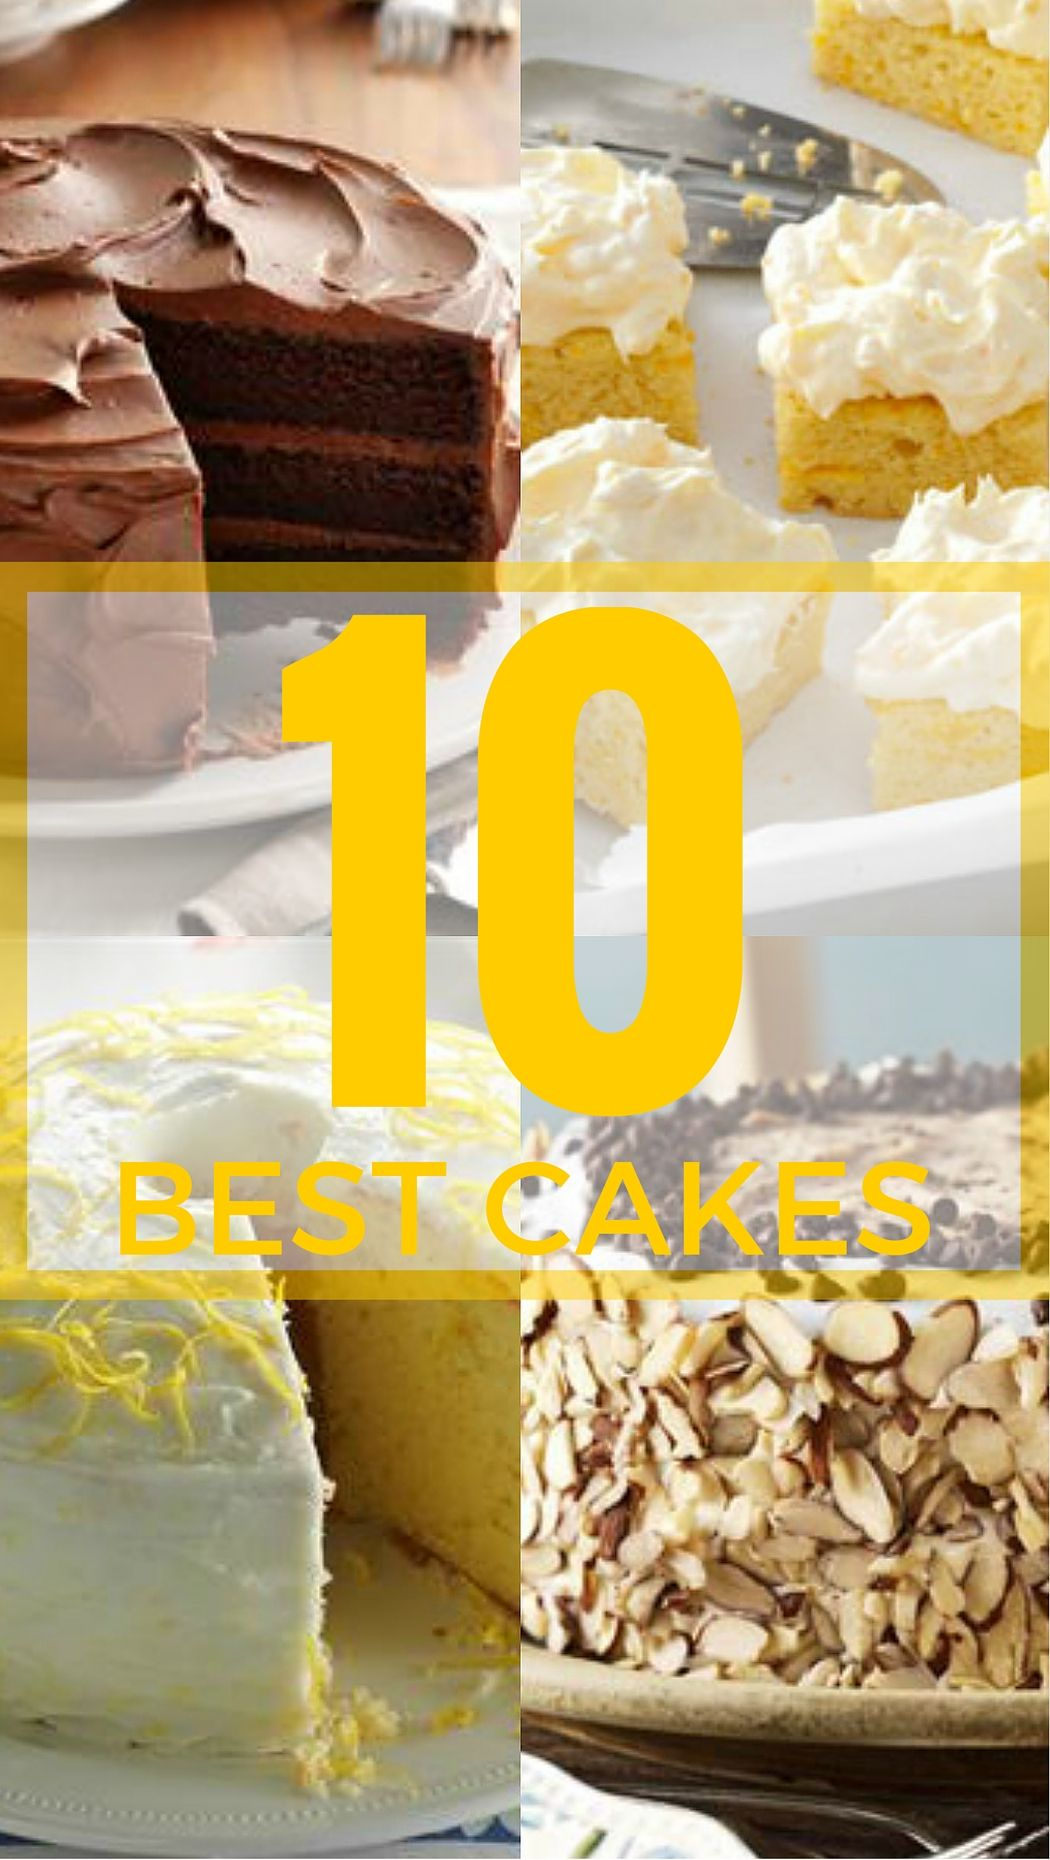 The 10 Best Cake Recipes According To Our Readers Cake Recipes